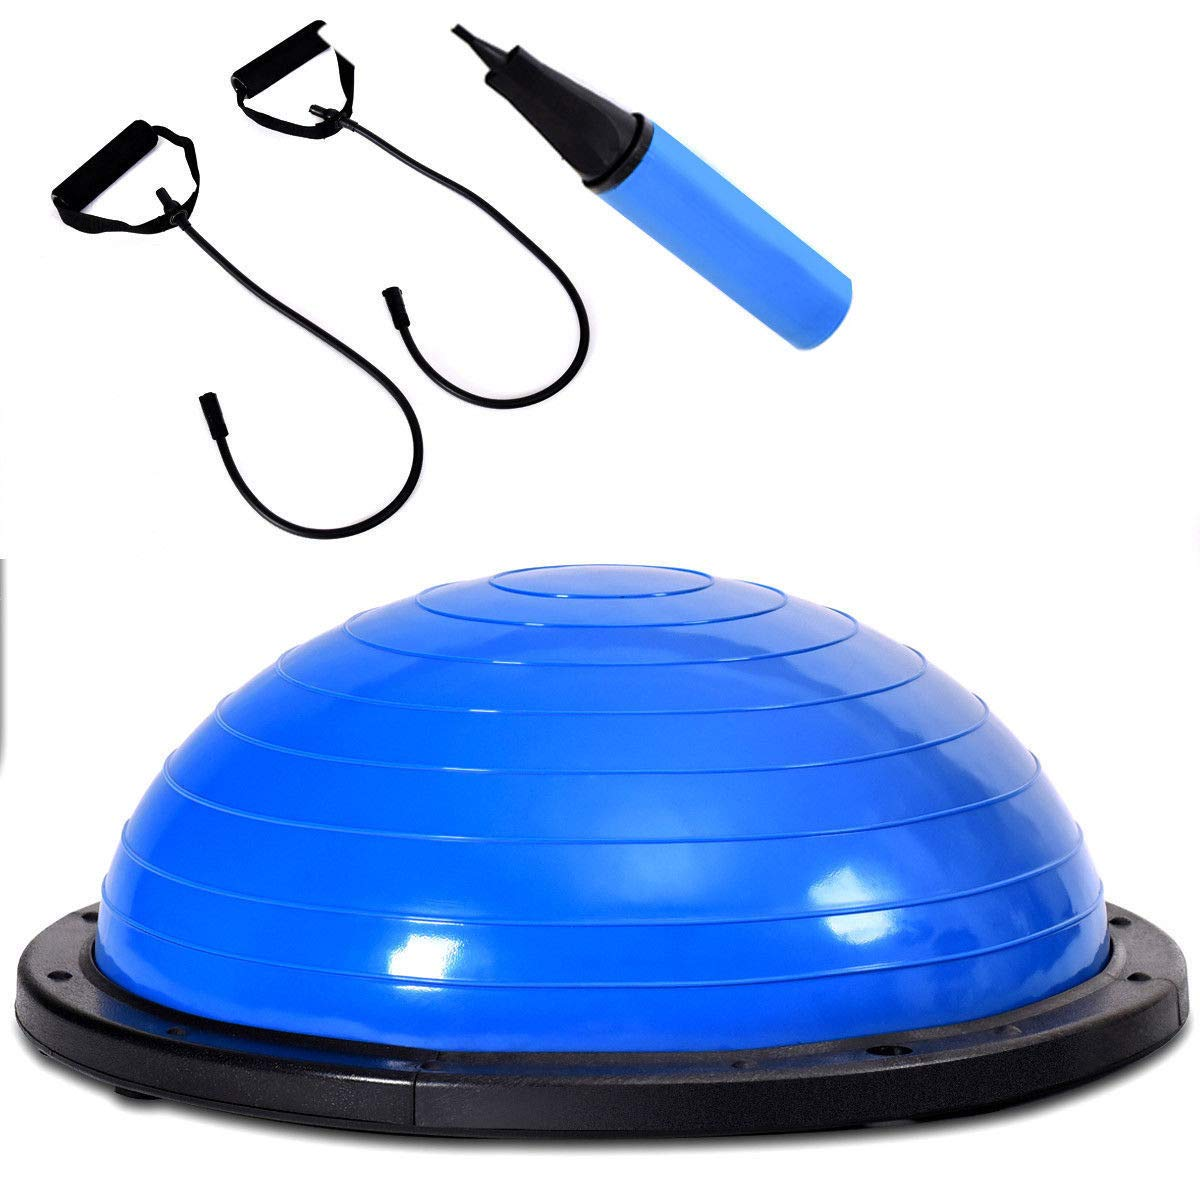 Giantex 23'' Yoga Ball with Pump Balance Fitness Trainer Home Exercise Training Balance Boards (Blue)